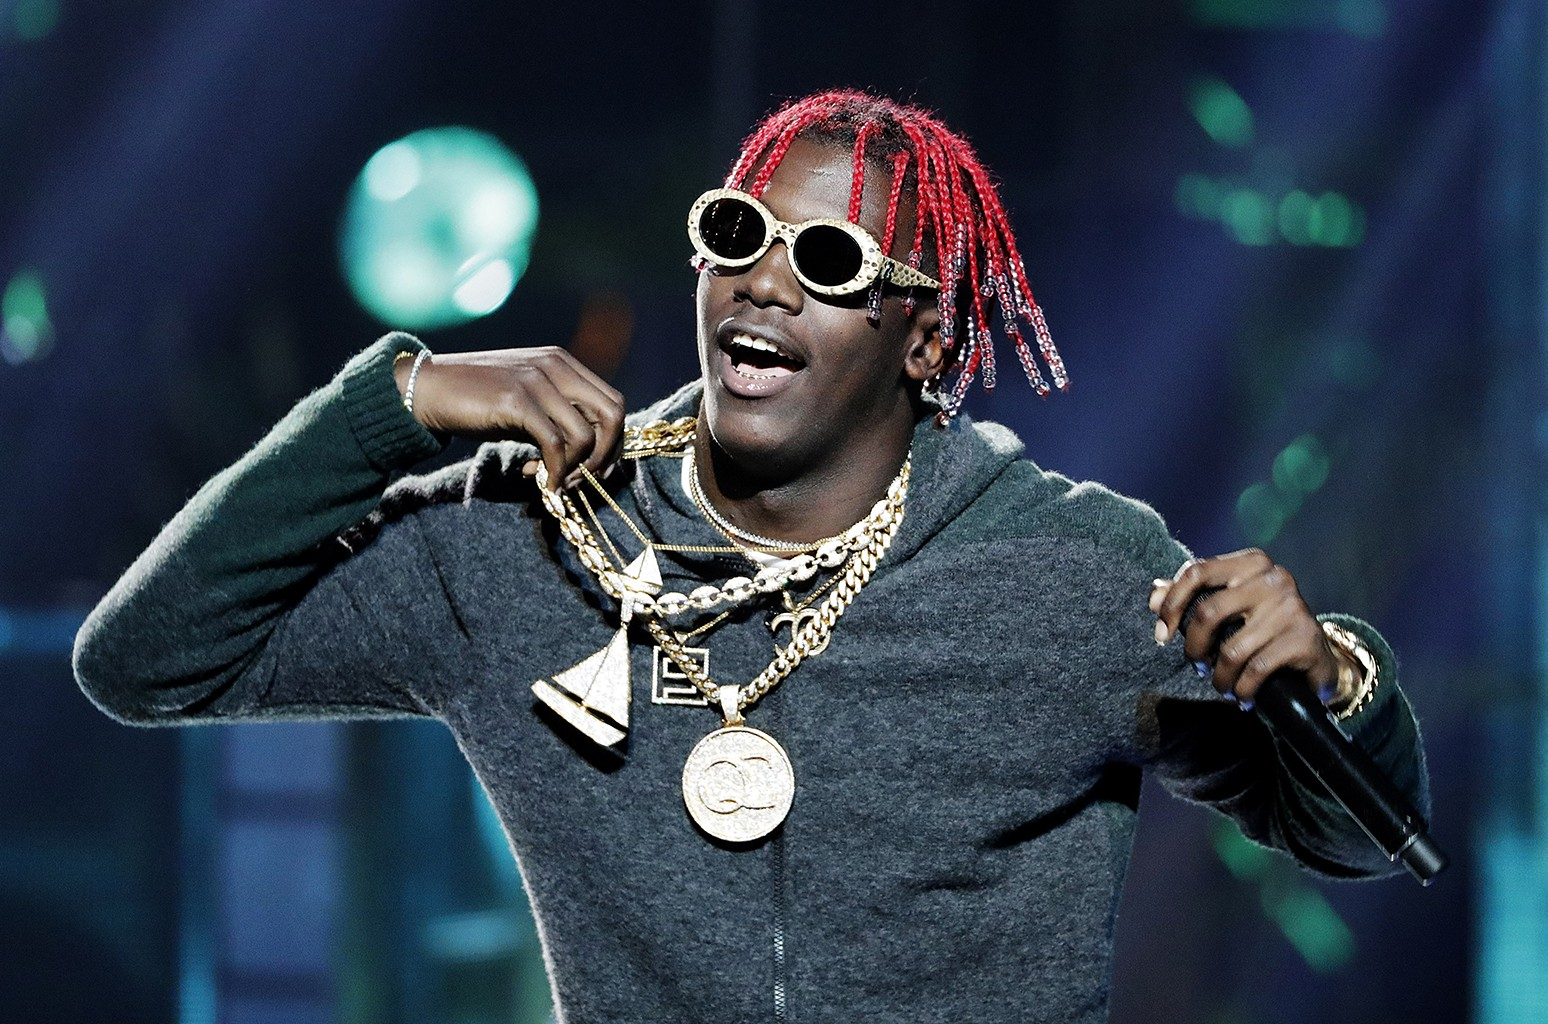 Lil Yachty performs during the BET Hip Hop Awards in Atlanta on Sept. 17, 2016.